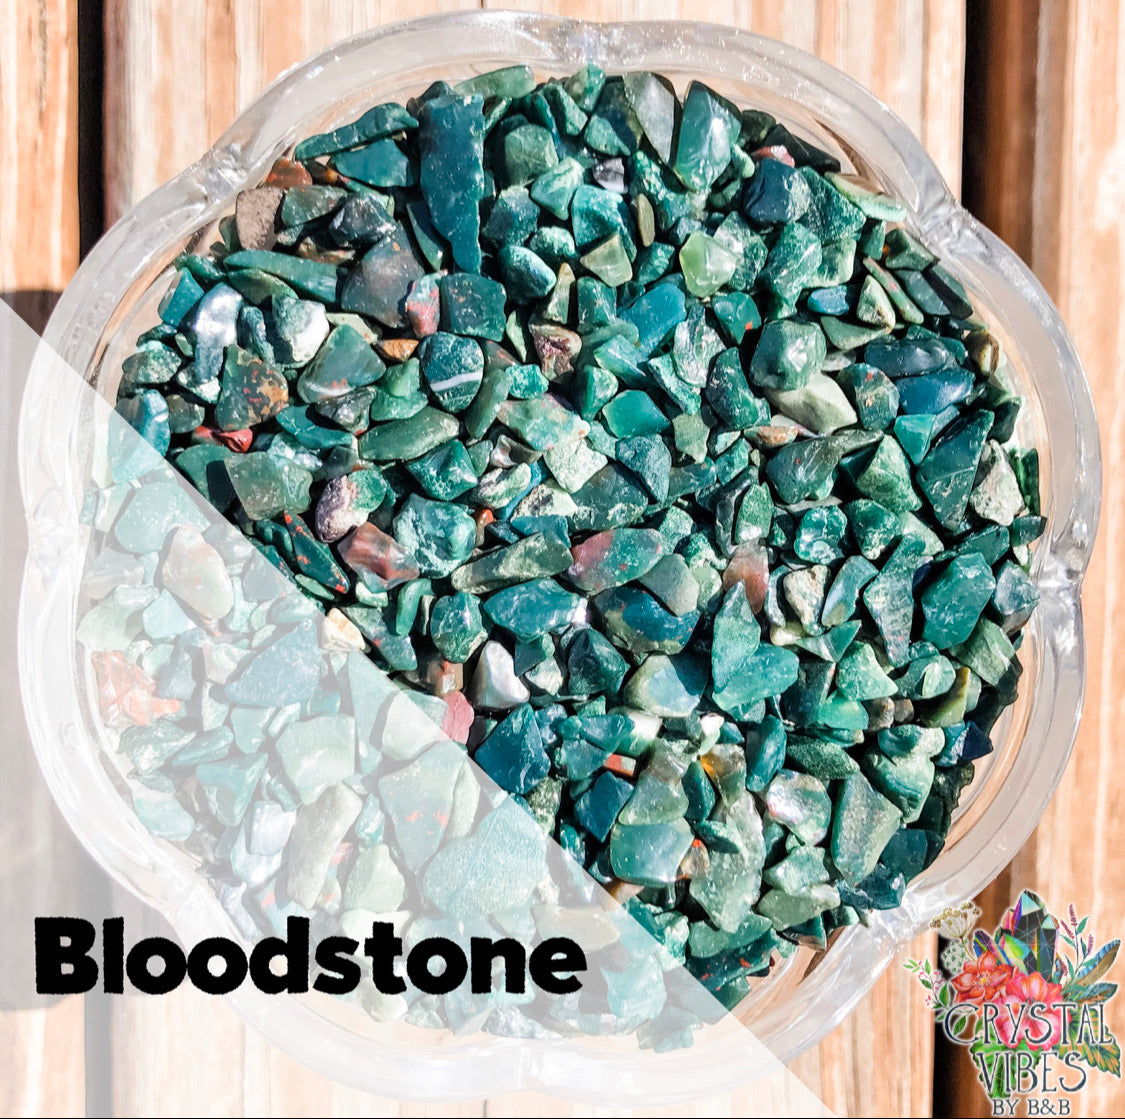 Bloodstone Crystal Chips